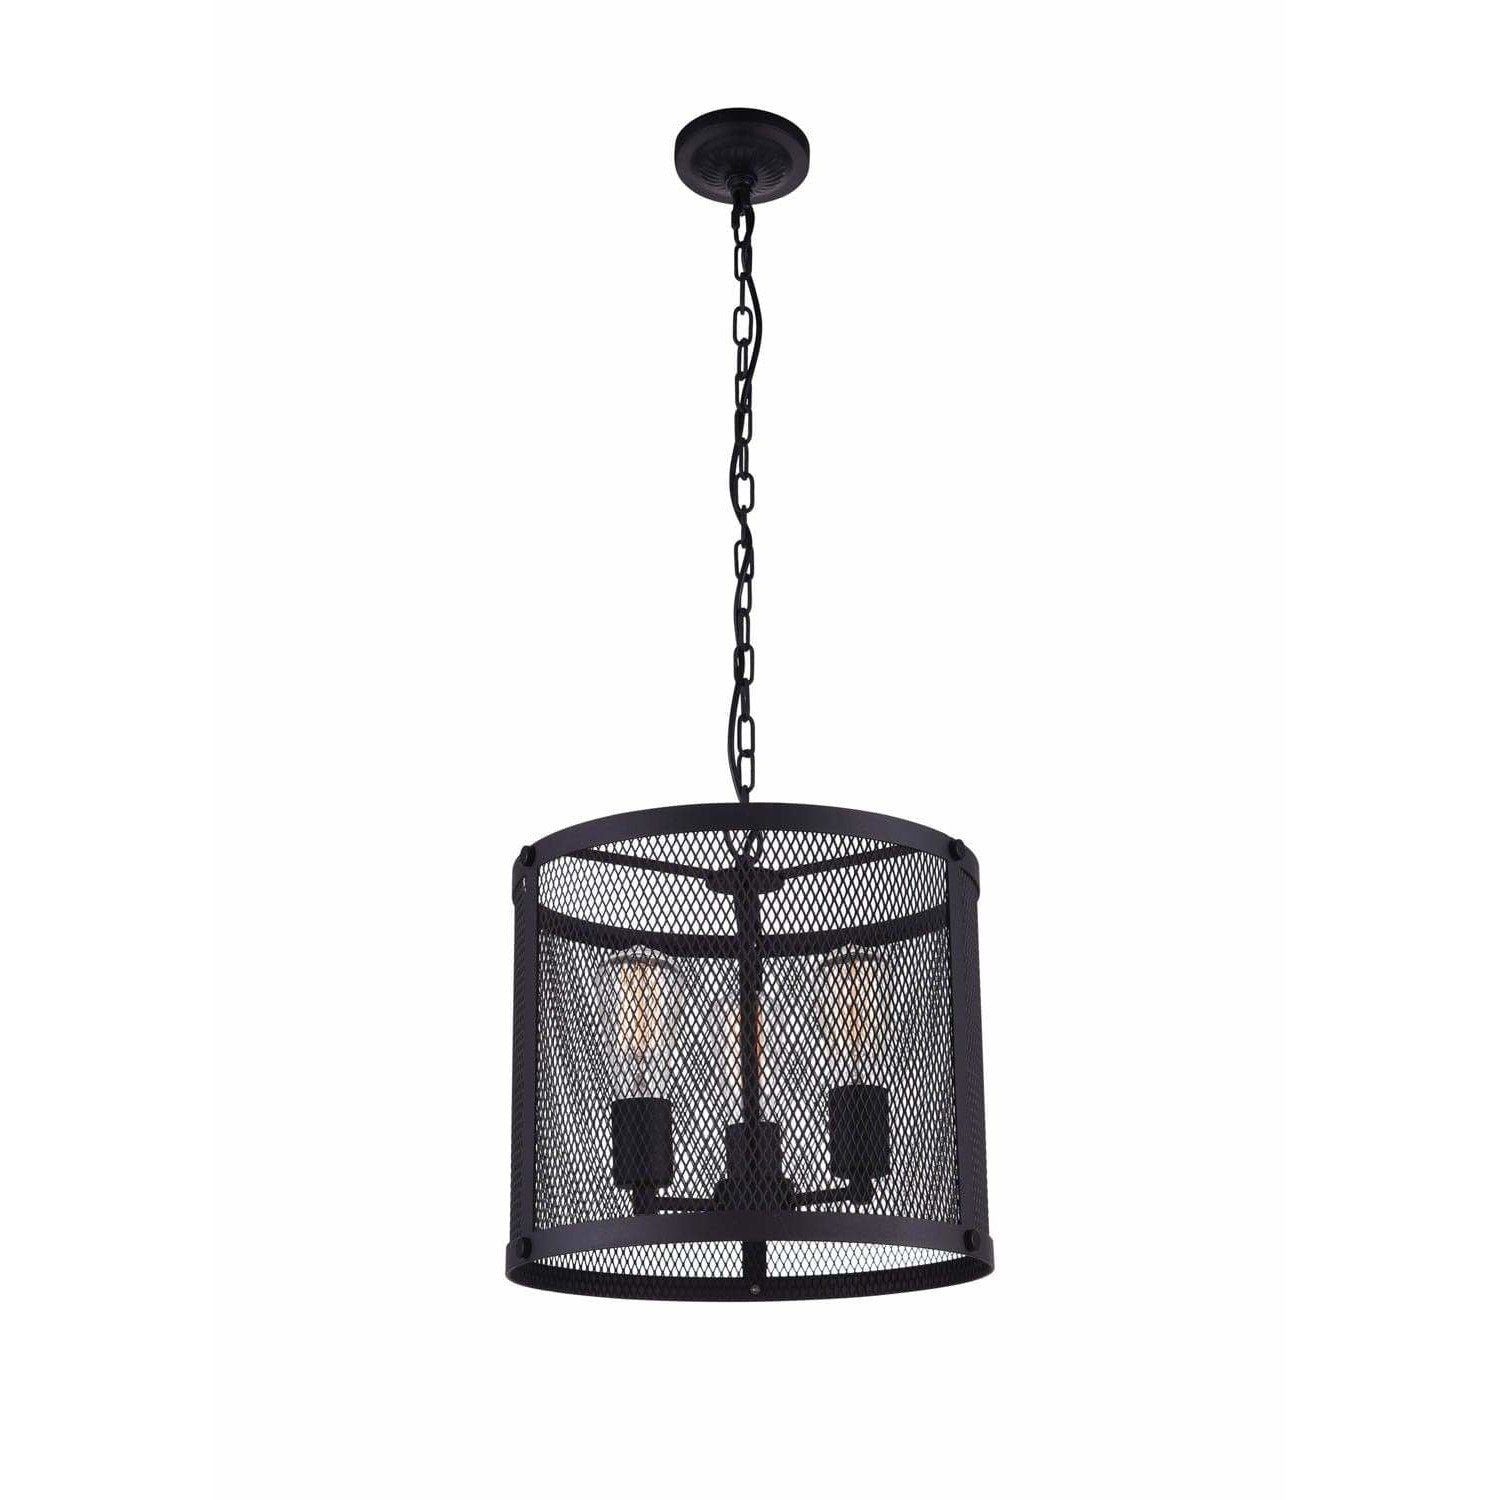 CWI Lighting Pendants Reddish Black Heale 3 Light Drum Shade Pendant with Reddish Black finish by CWI Lighting 9937P14-3-219